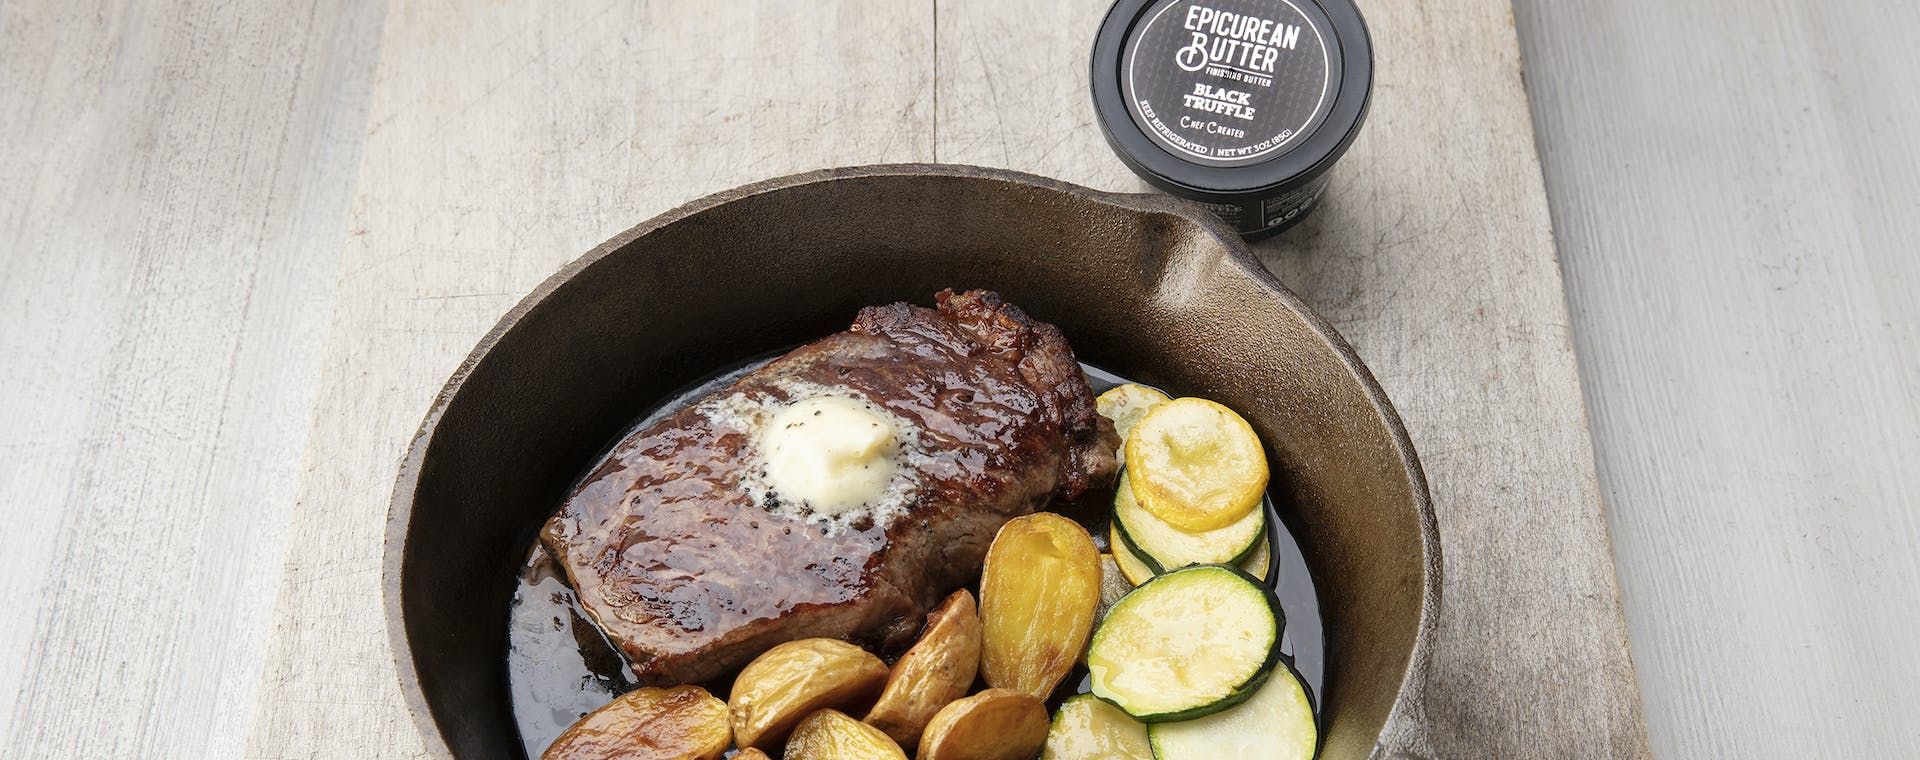 Grilled steak topped with Epicurean Black Truffle flavored butter